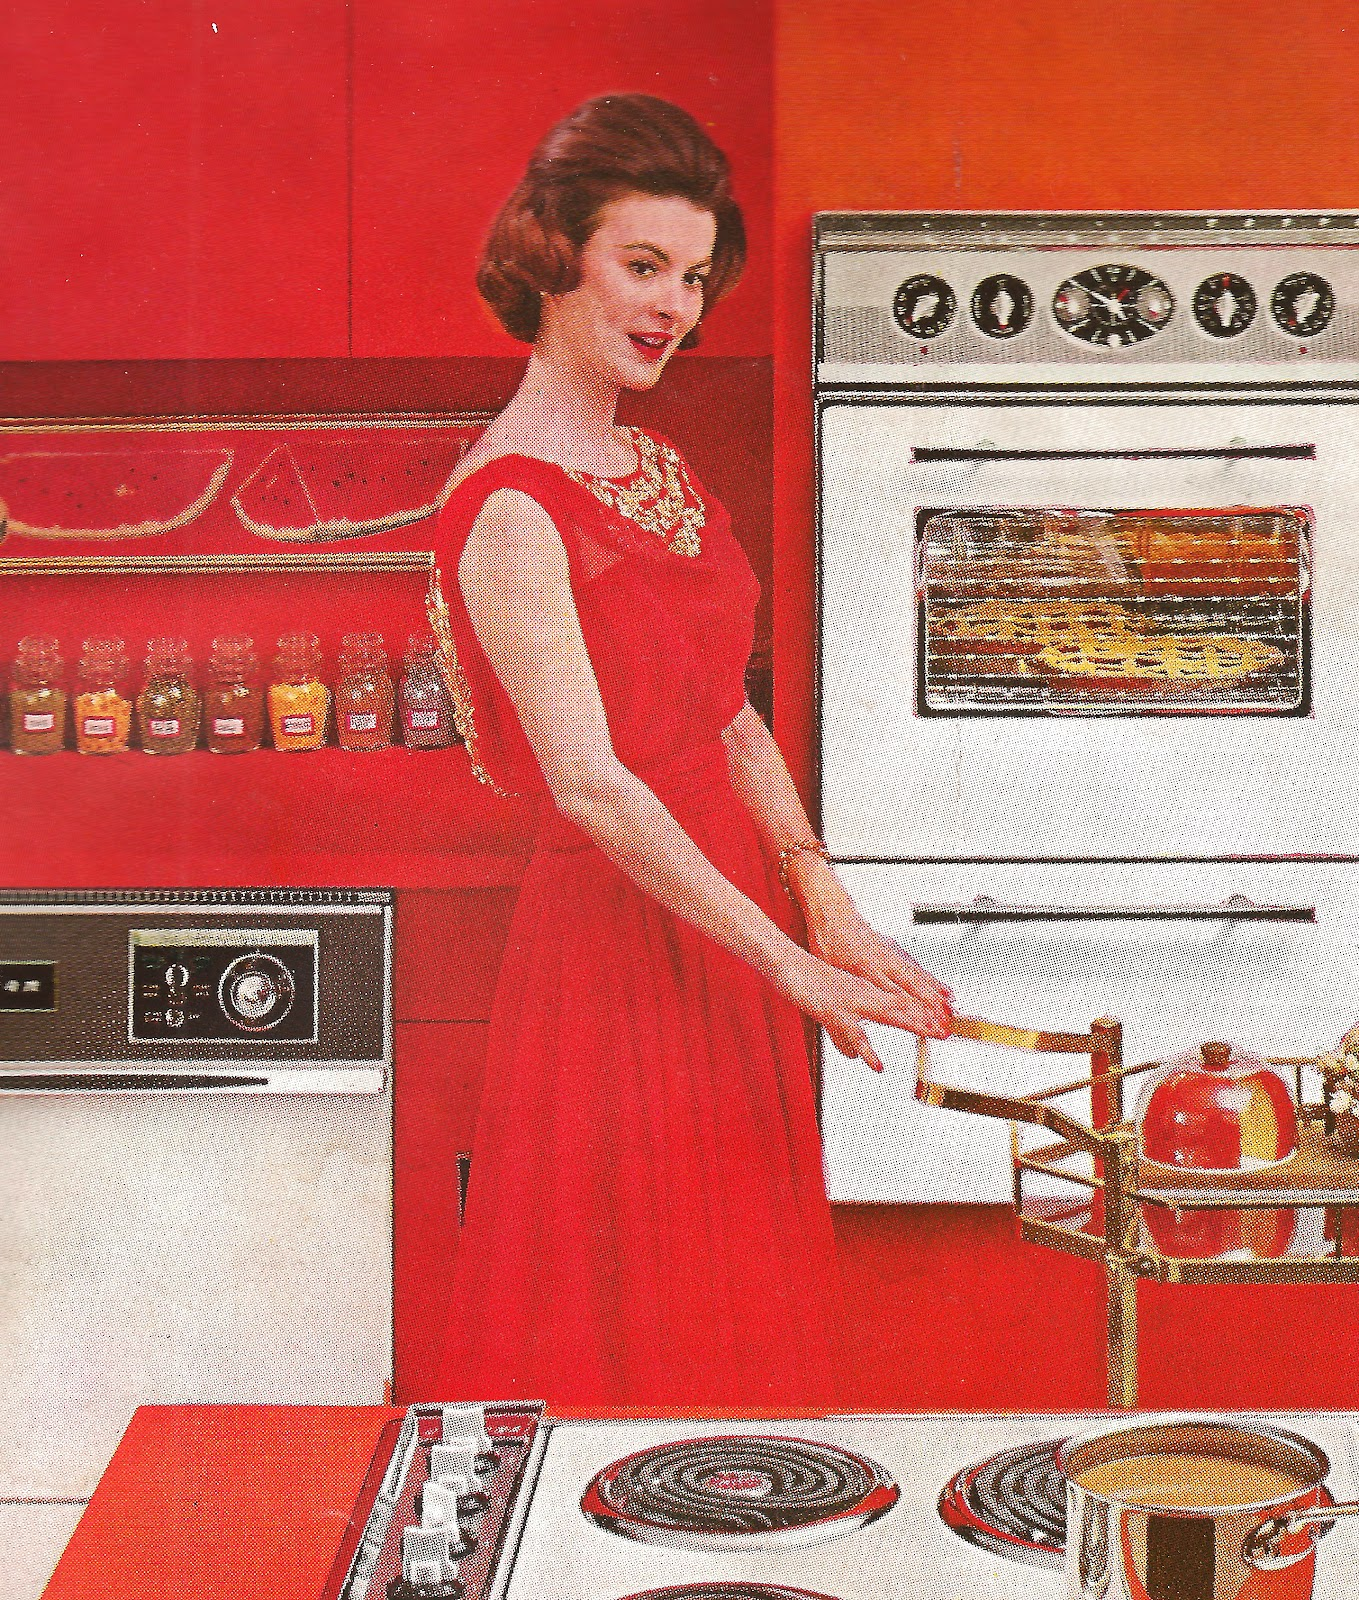 Retro Kitchen Ad This kitchen is the mostRetro Kitchen Ad